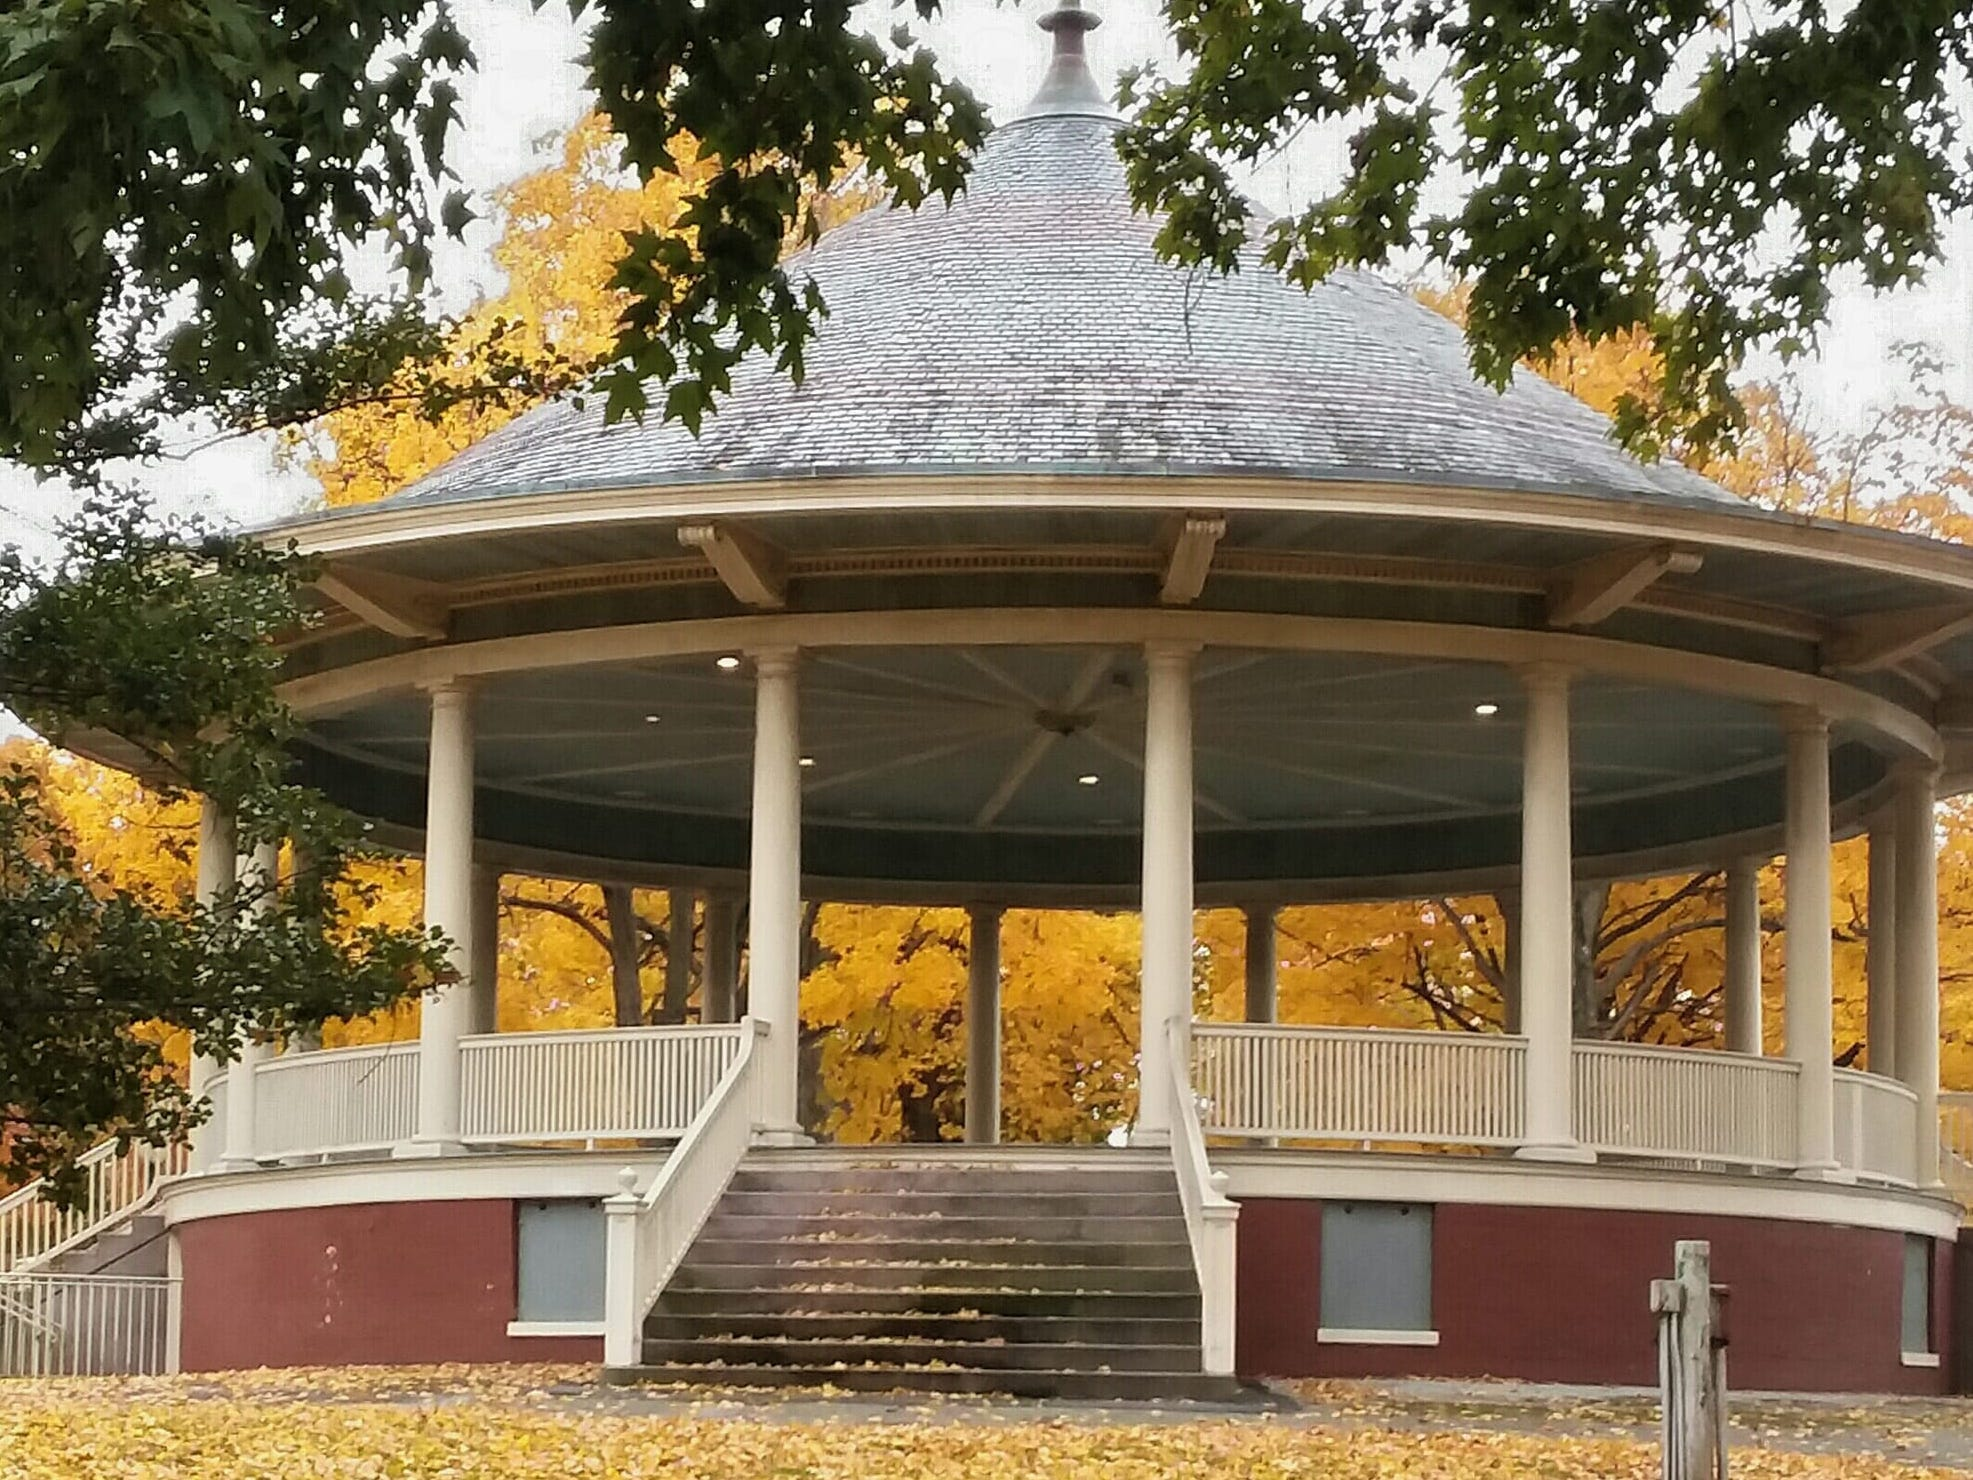 Judy Leckrone shot the bandstand in Farquhar Park.